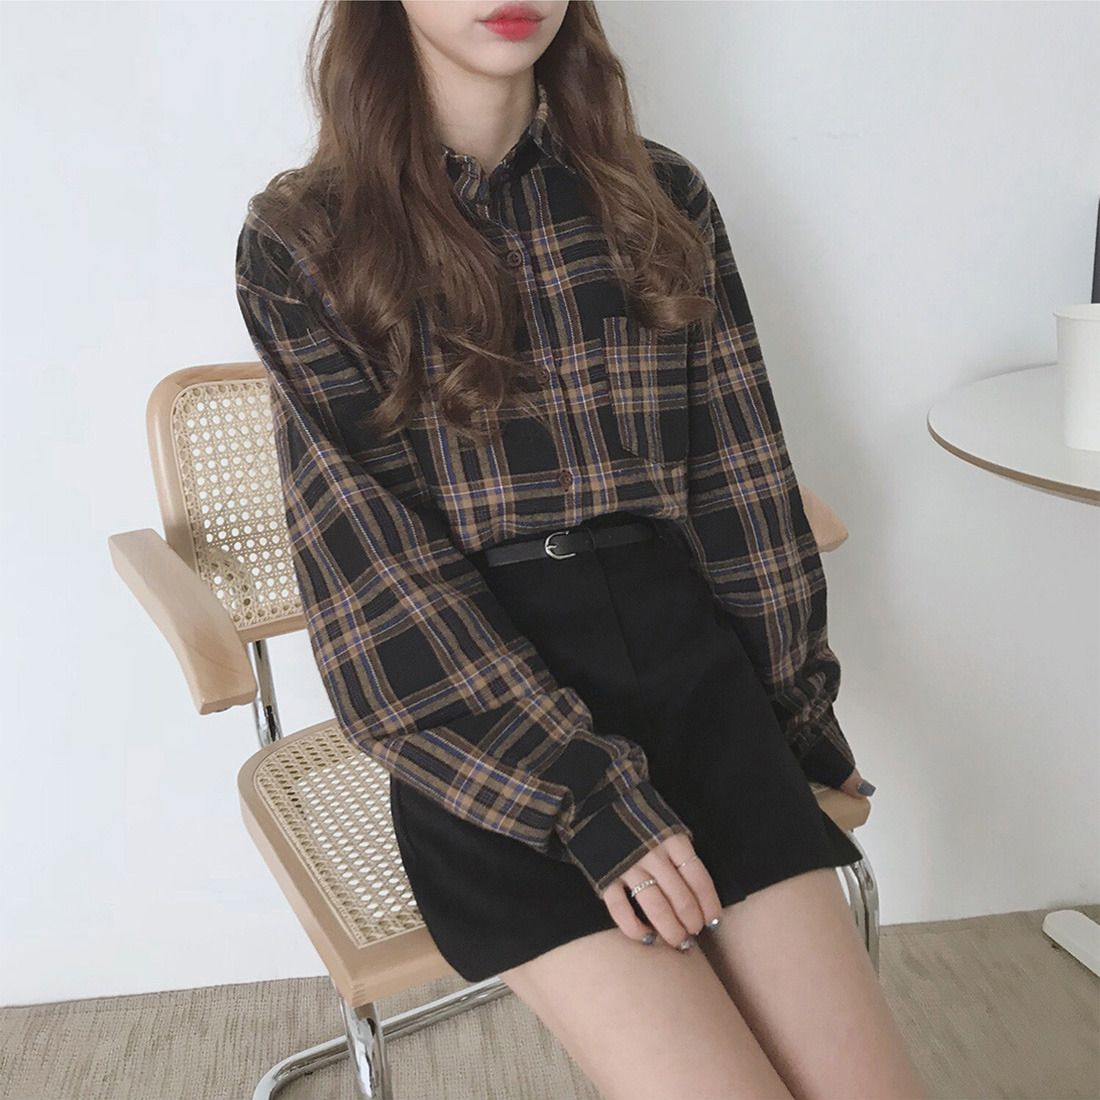 Brush Check Skirt  Fashion outfits, Checked skirt outfit, Fashion